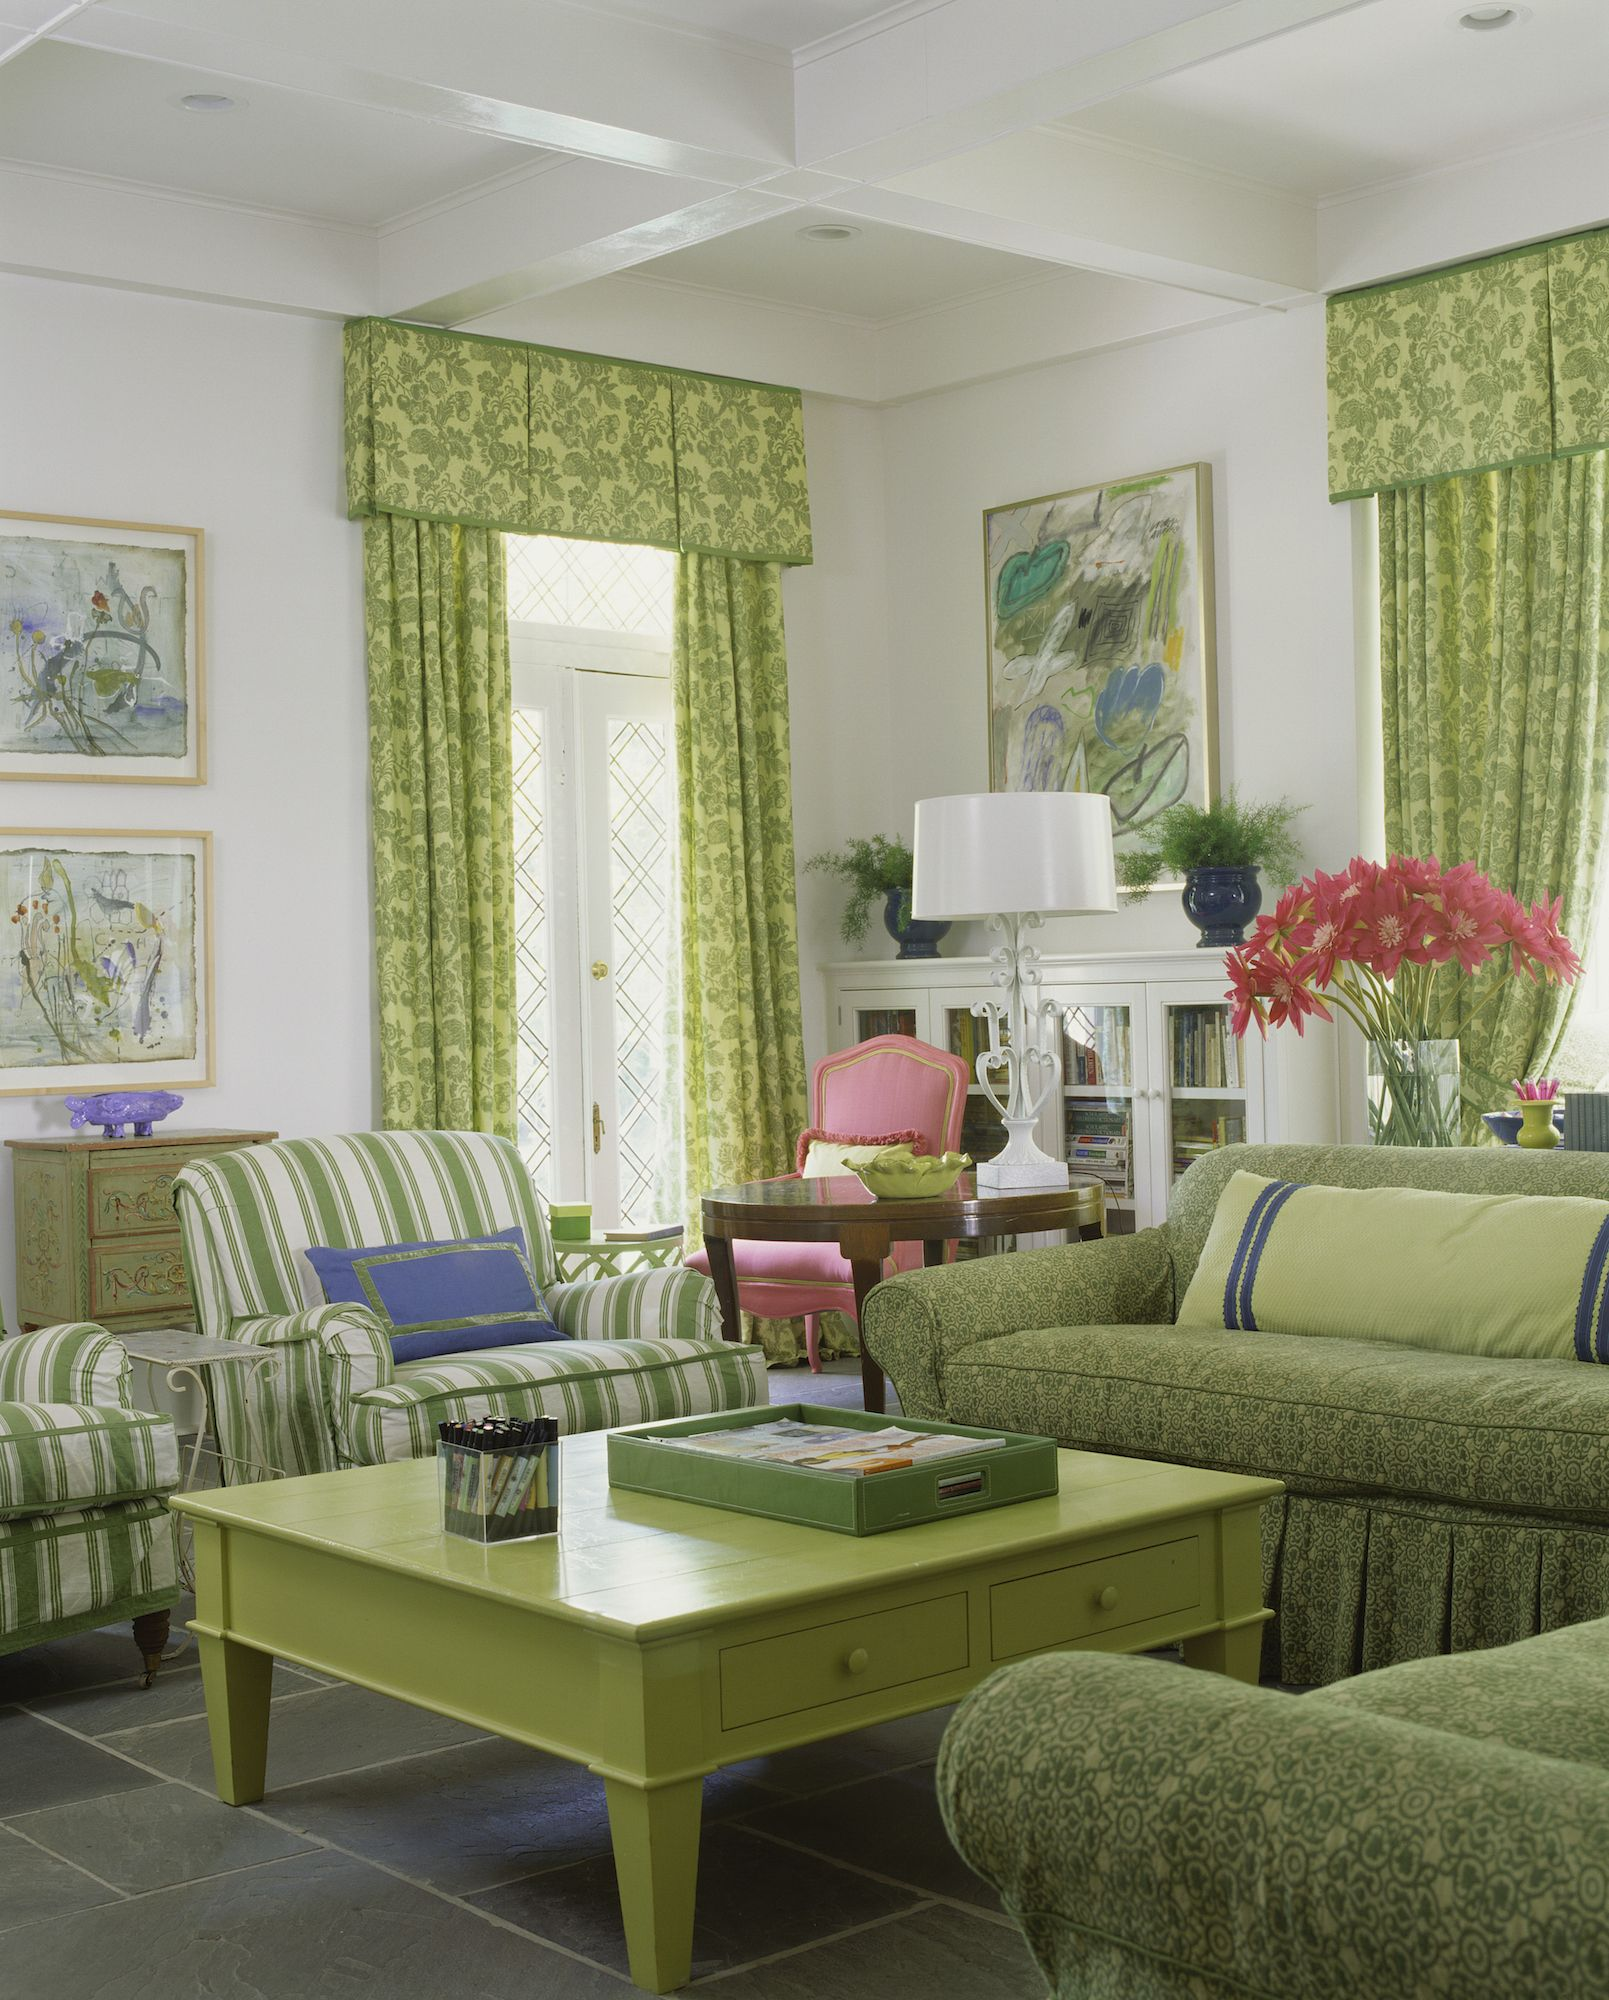 40 decorating trends that are out most outdated home decor styles